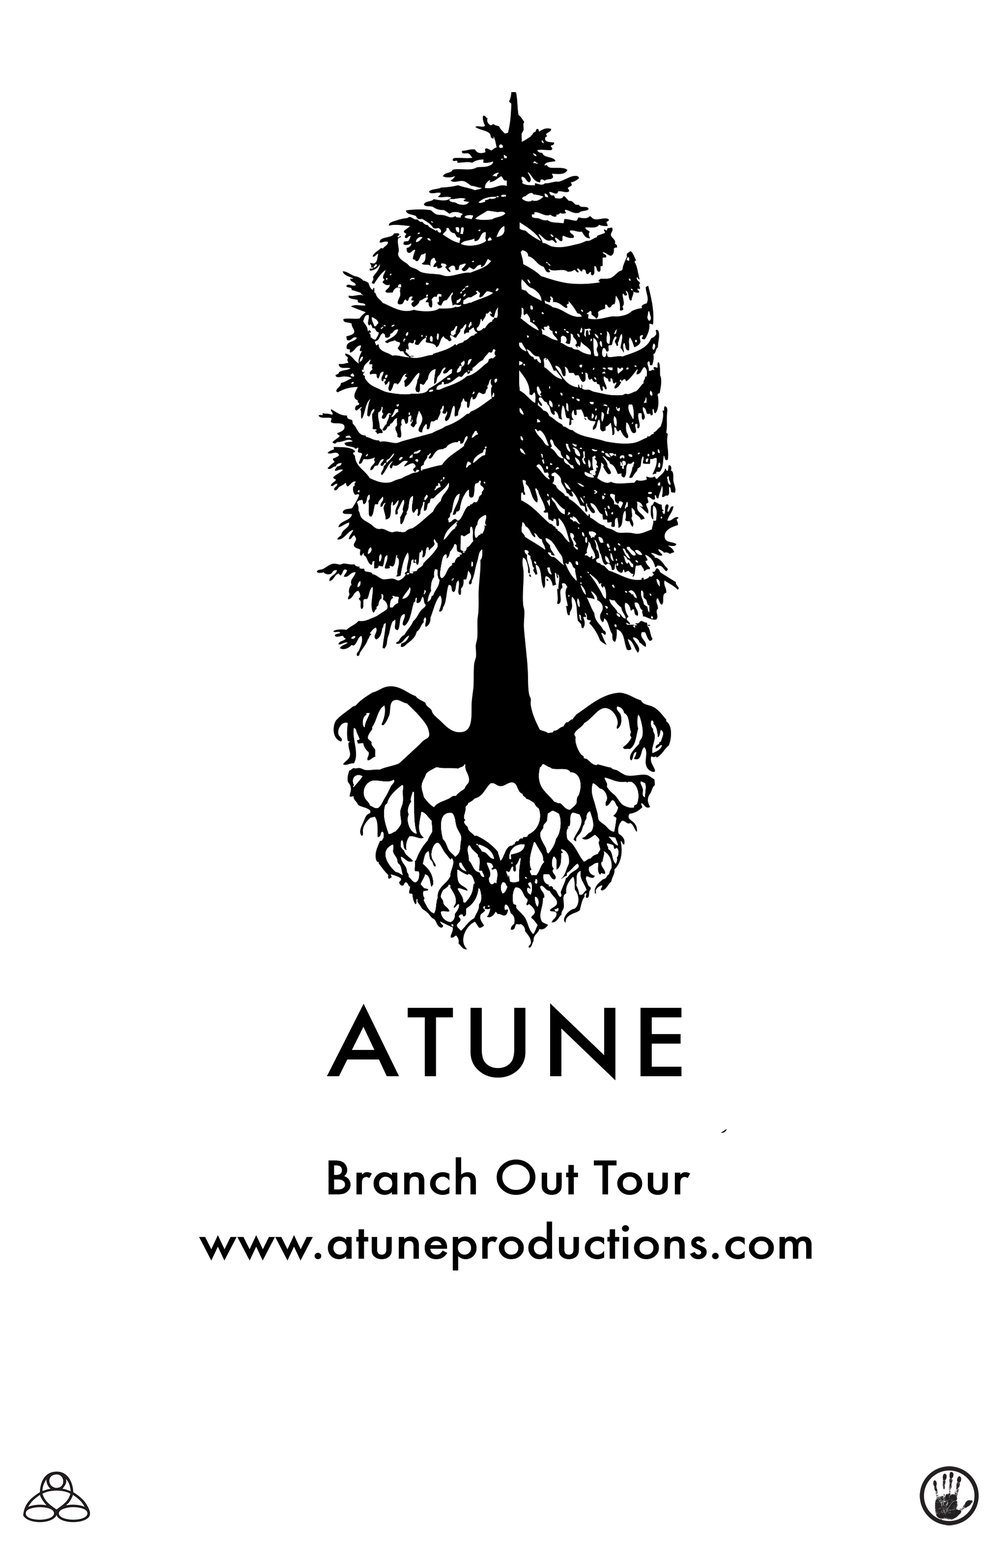 atune-flyer-full-size.jpg